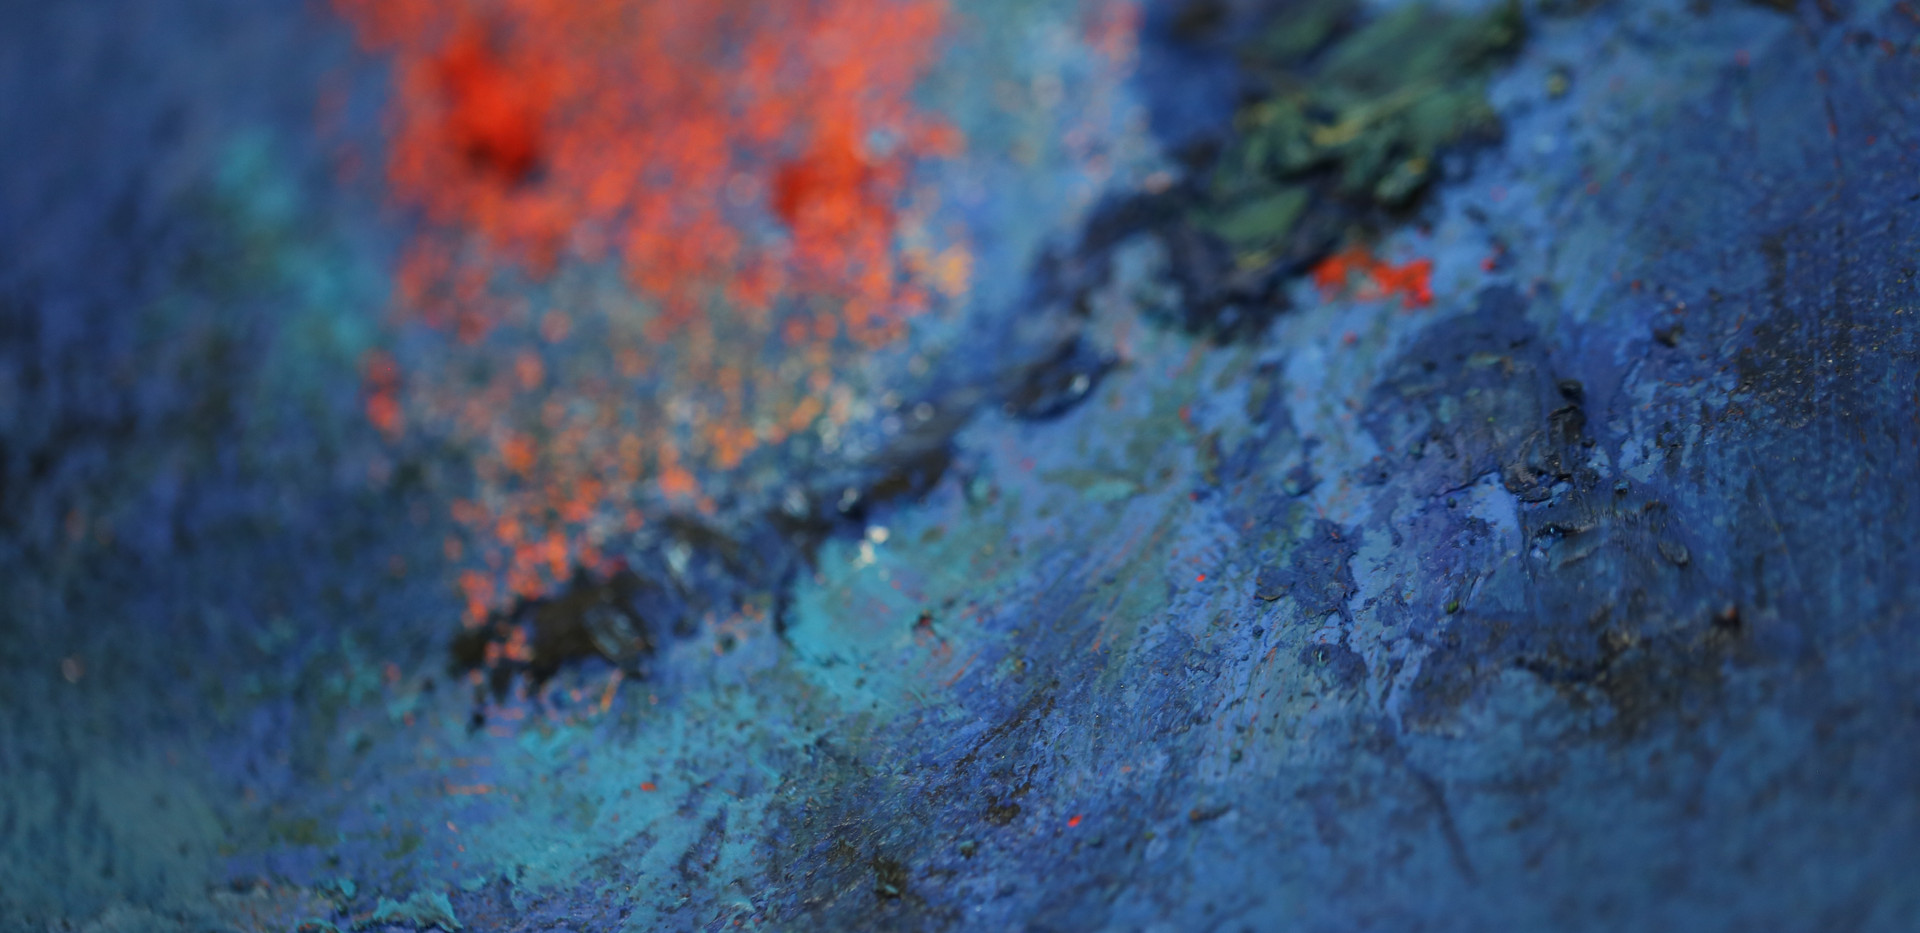 Title: Argon (detail)  Size:  160 x 100 x 5mm  Materials:  Oil paint, oil bars, acrylic paint, textured medium and sand